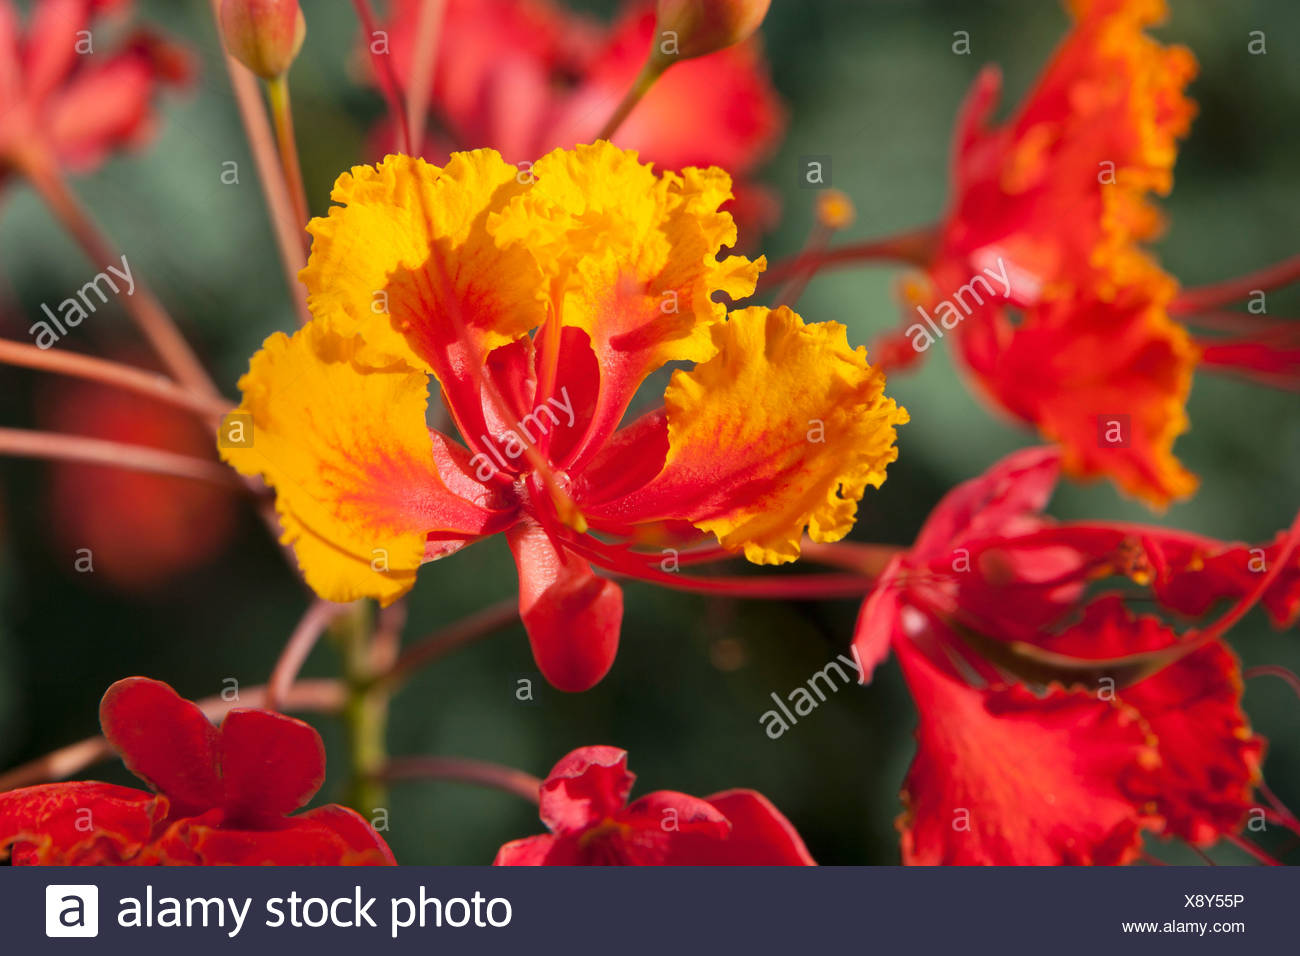 Close up of mexican bird of paradise caesalpinia pulcherrima close up of mexican bird of paradise caesalpinia pulcherrima flowers palm springs california united states of america mightylinksfo